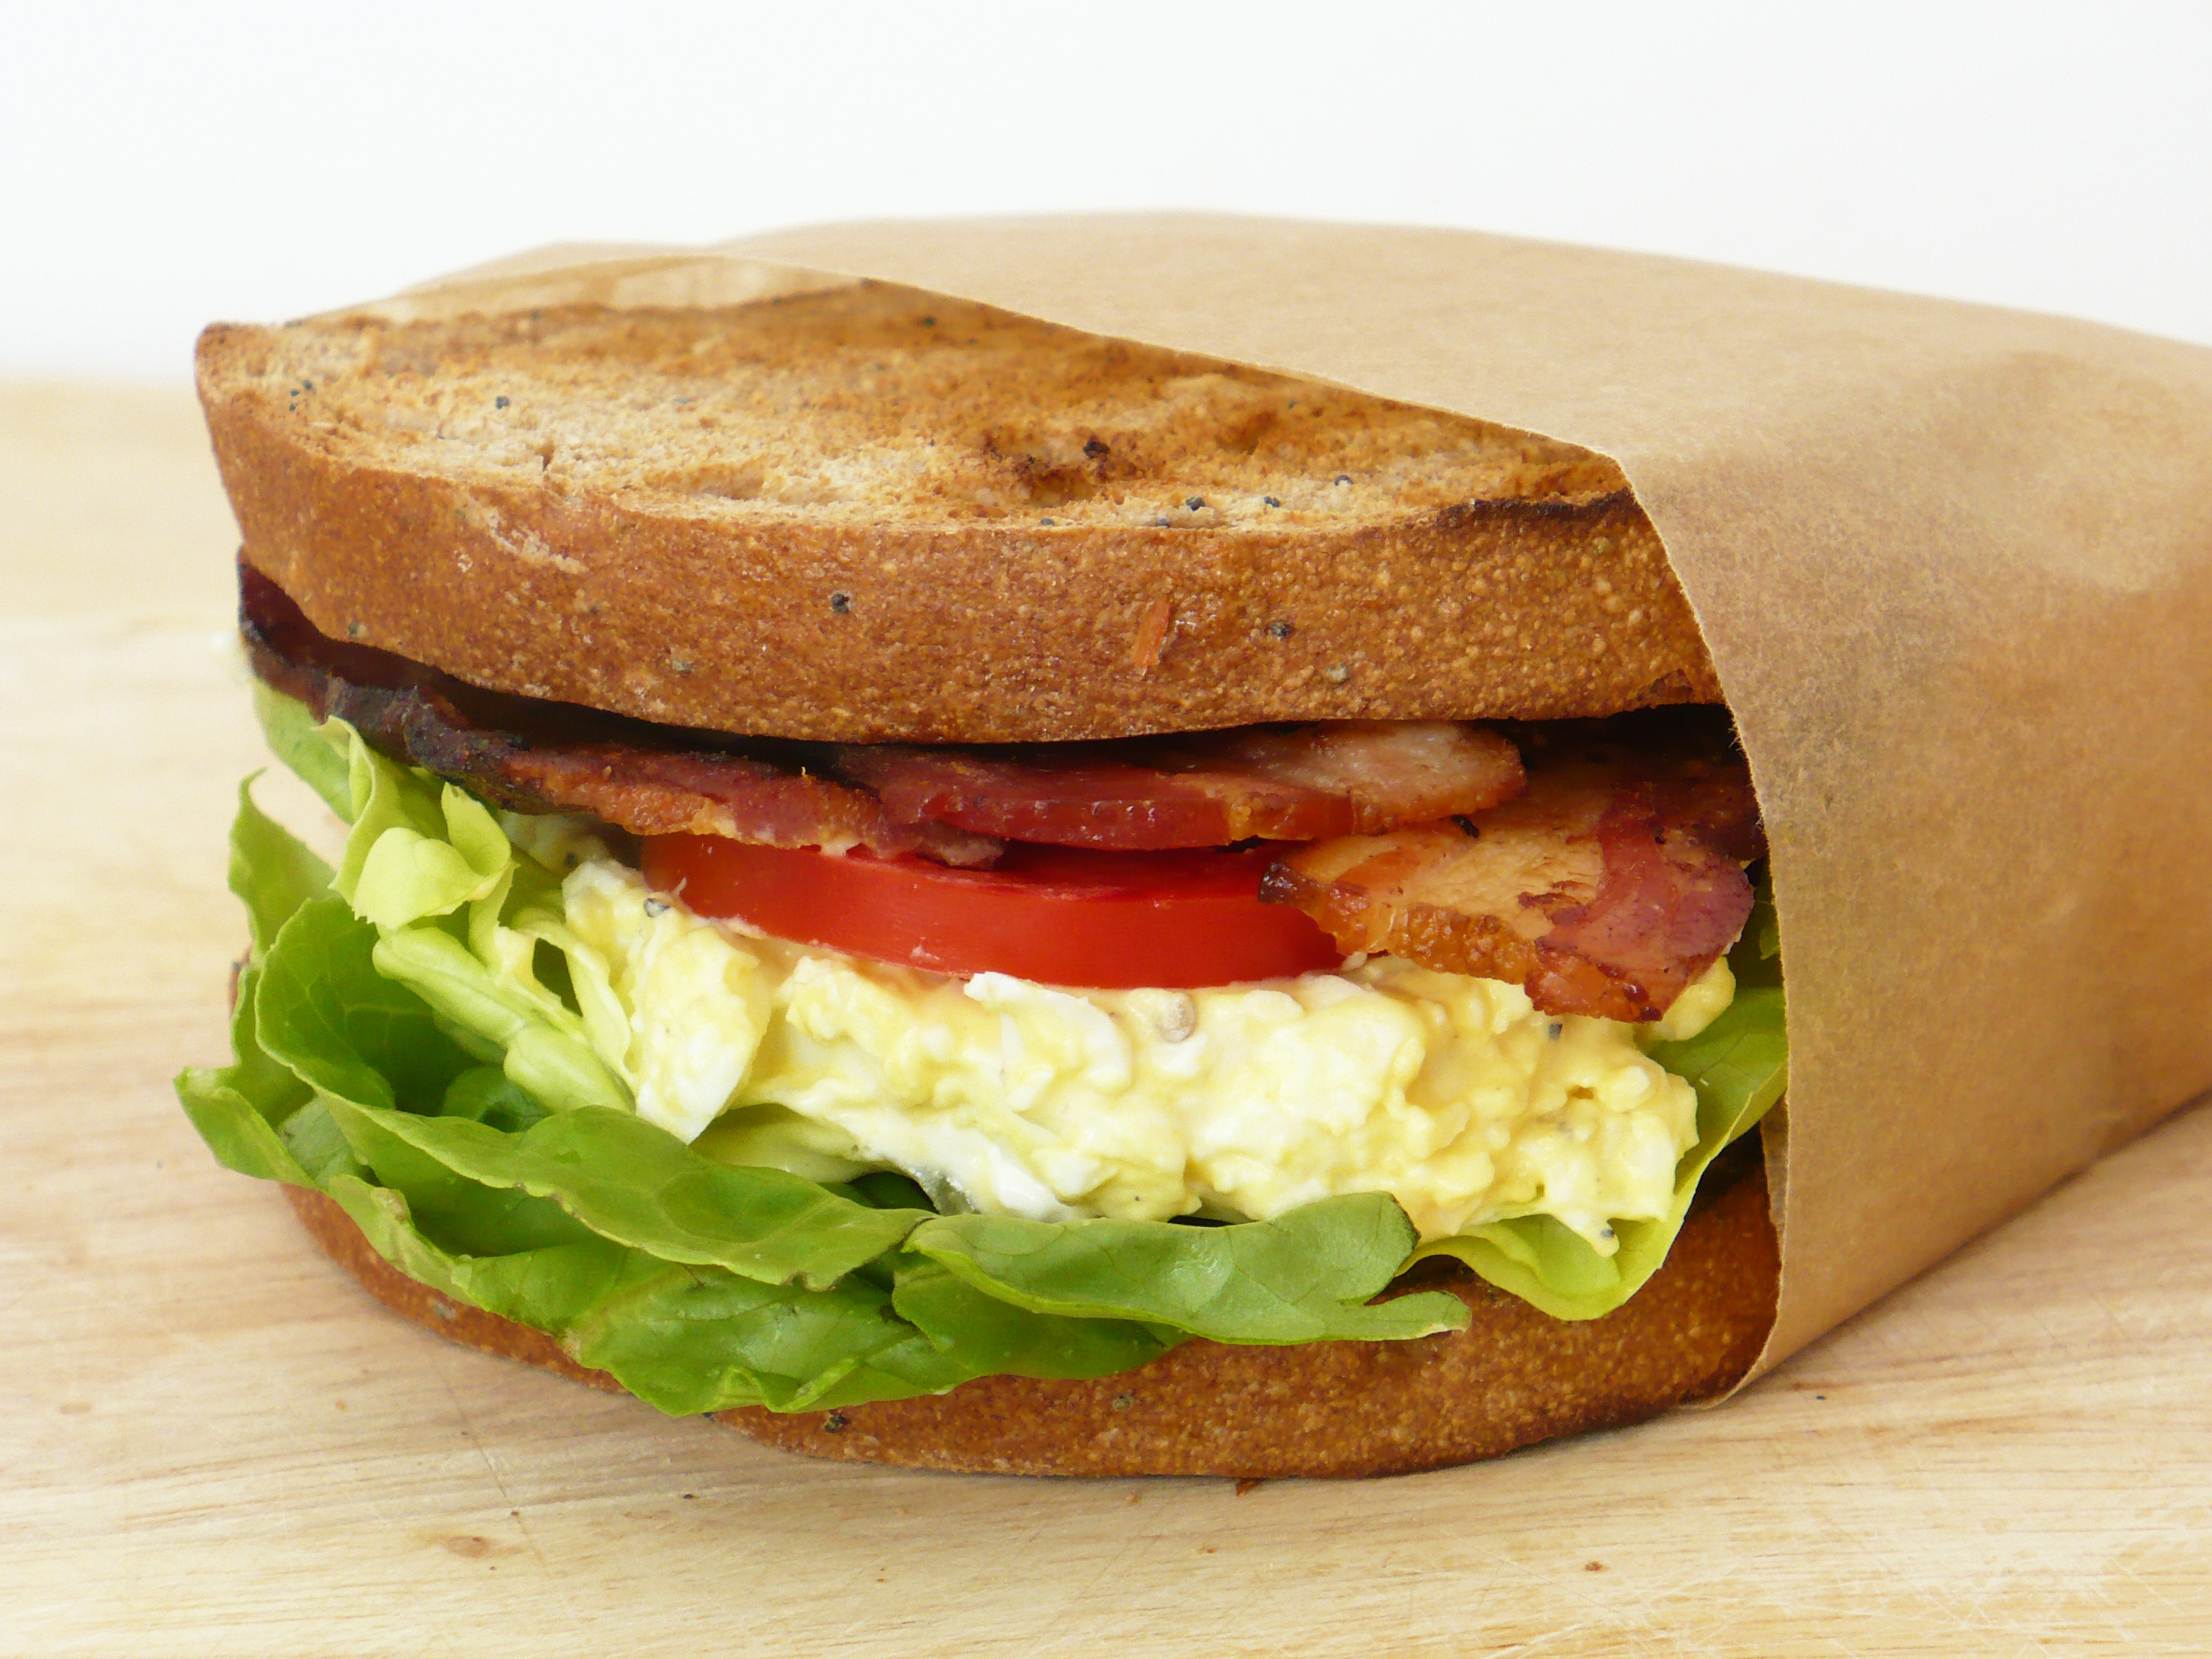 Bacon, Egg Salad, Lettuce and Tomato Sandwich